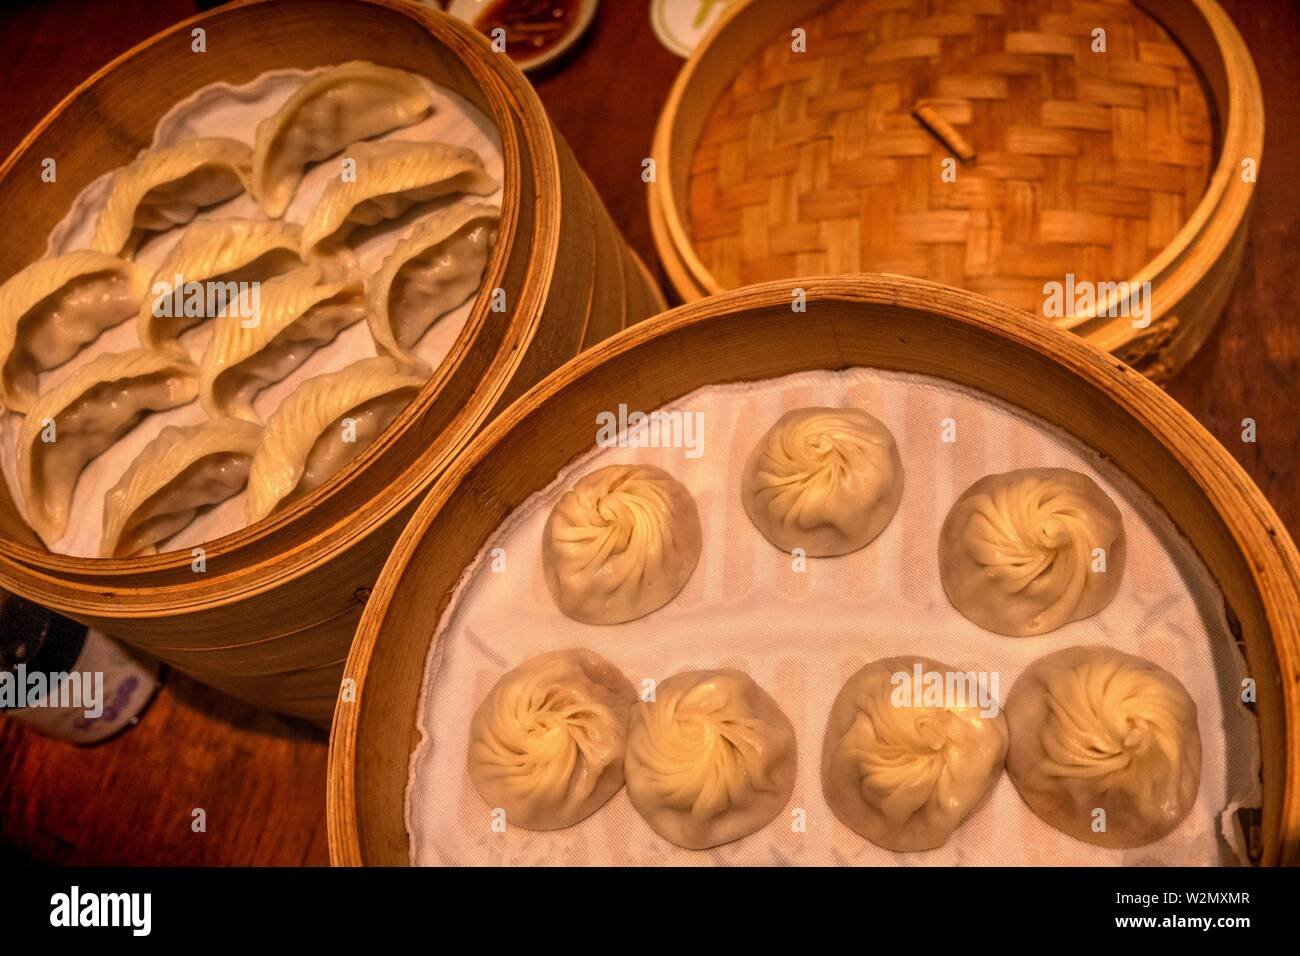 Singapore, serving 'Dim Shu' at the Restaurant Din Tai Fung. - Stock Image